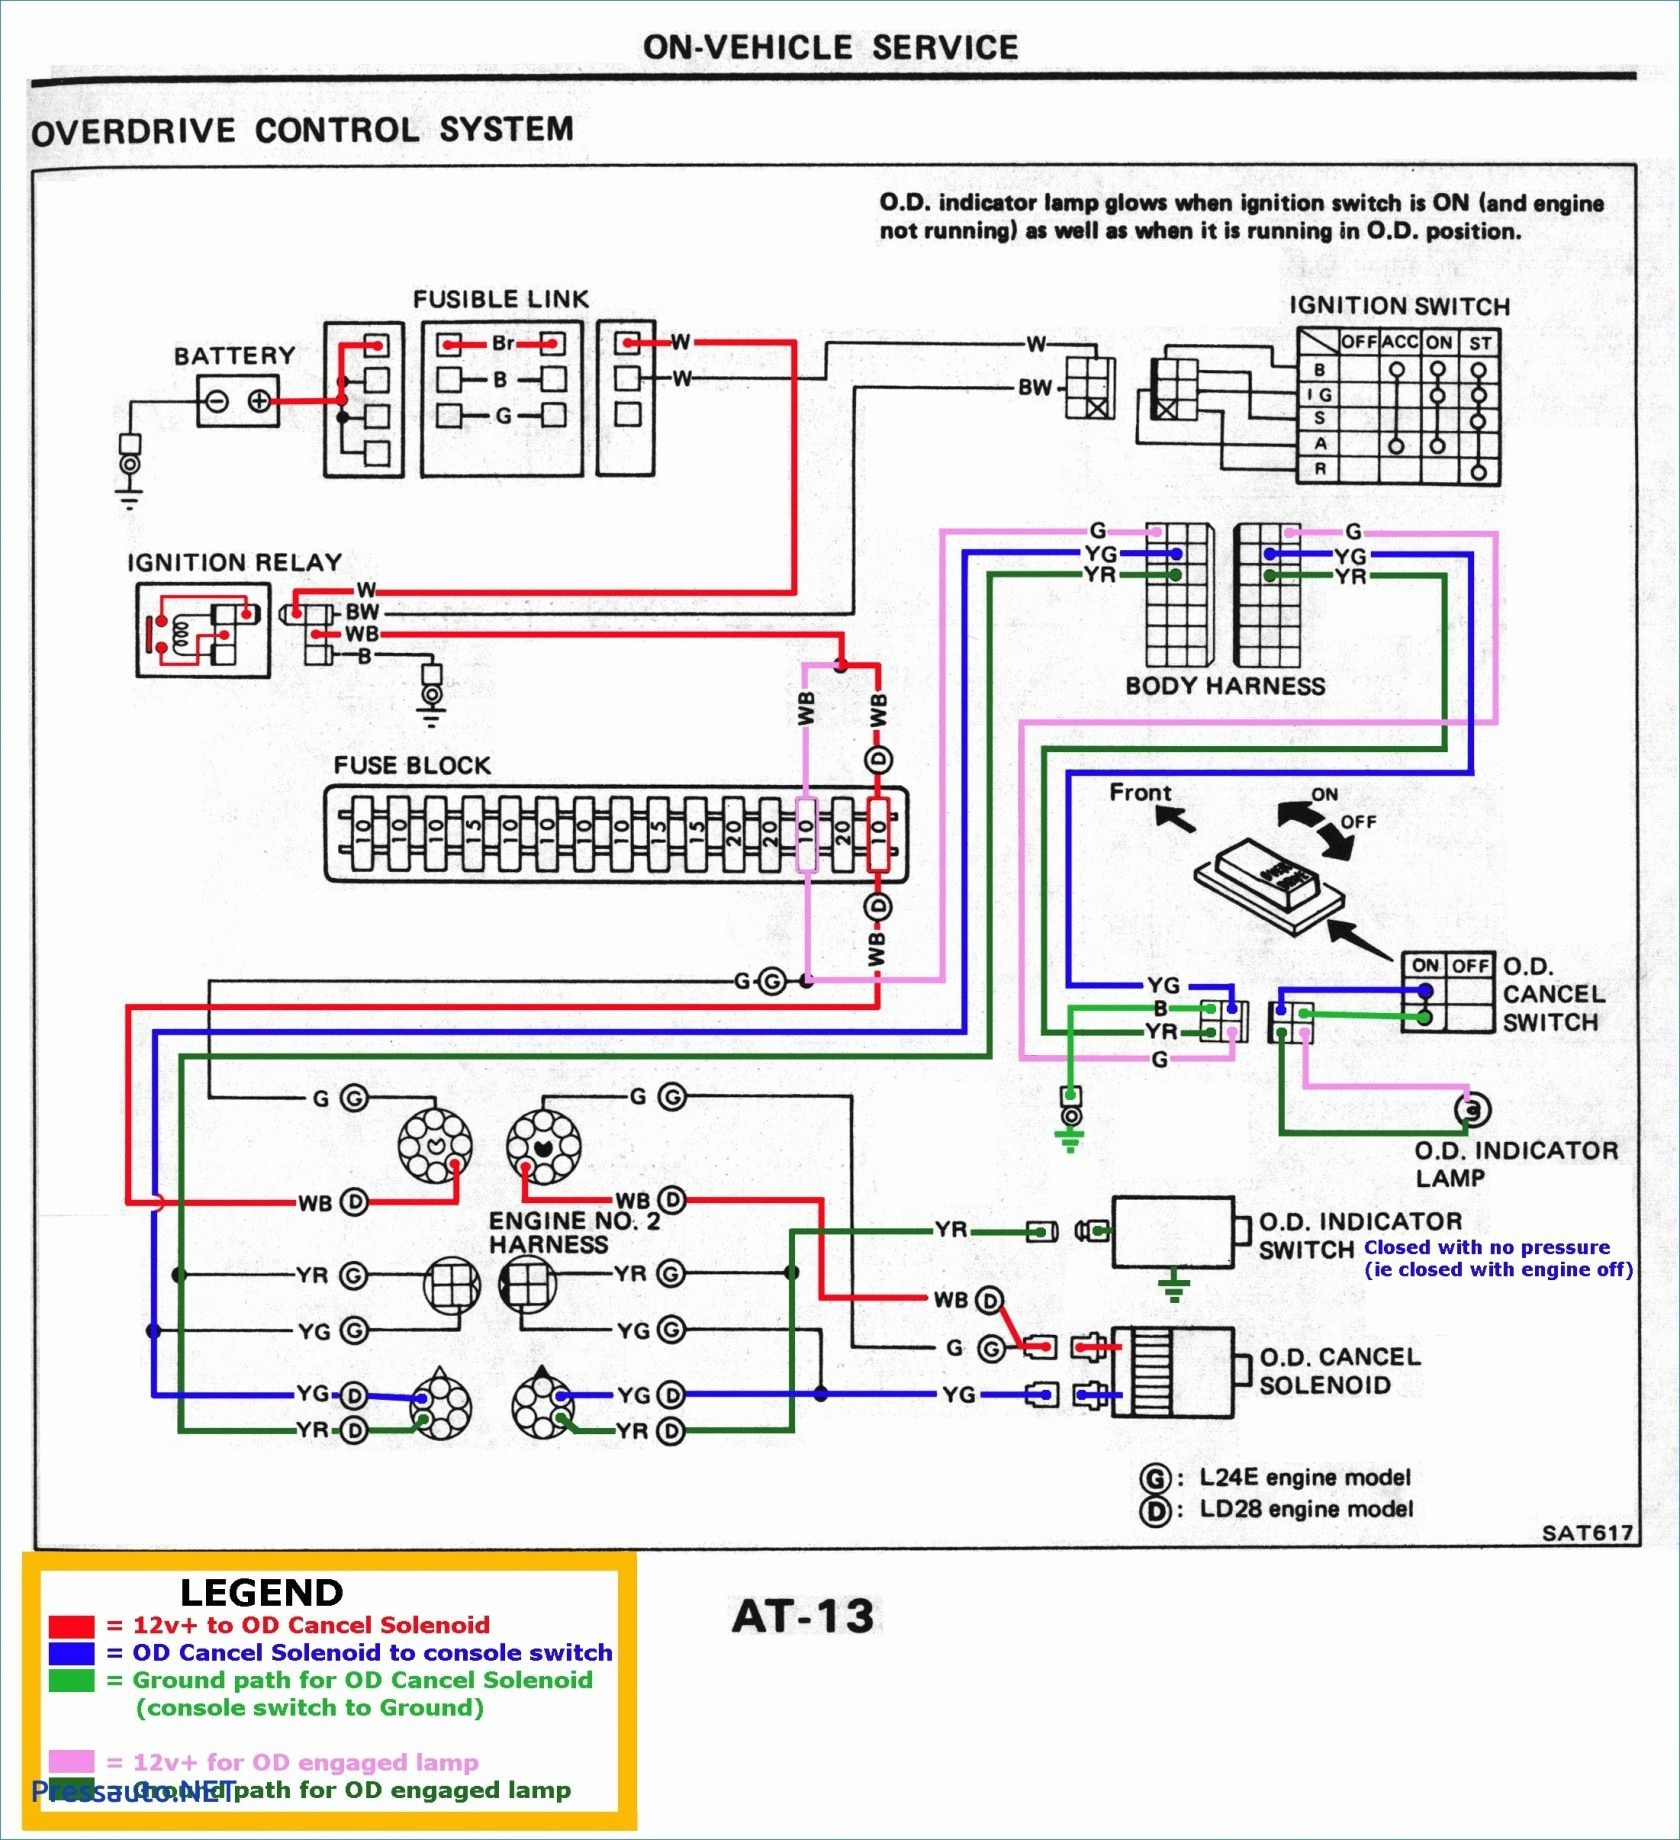 wiring diagram for murray riding lawn mower solenoid. Black Bedroom Furniture Sets. Home Design Ideas